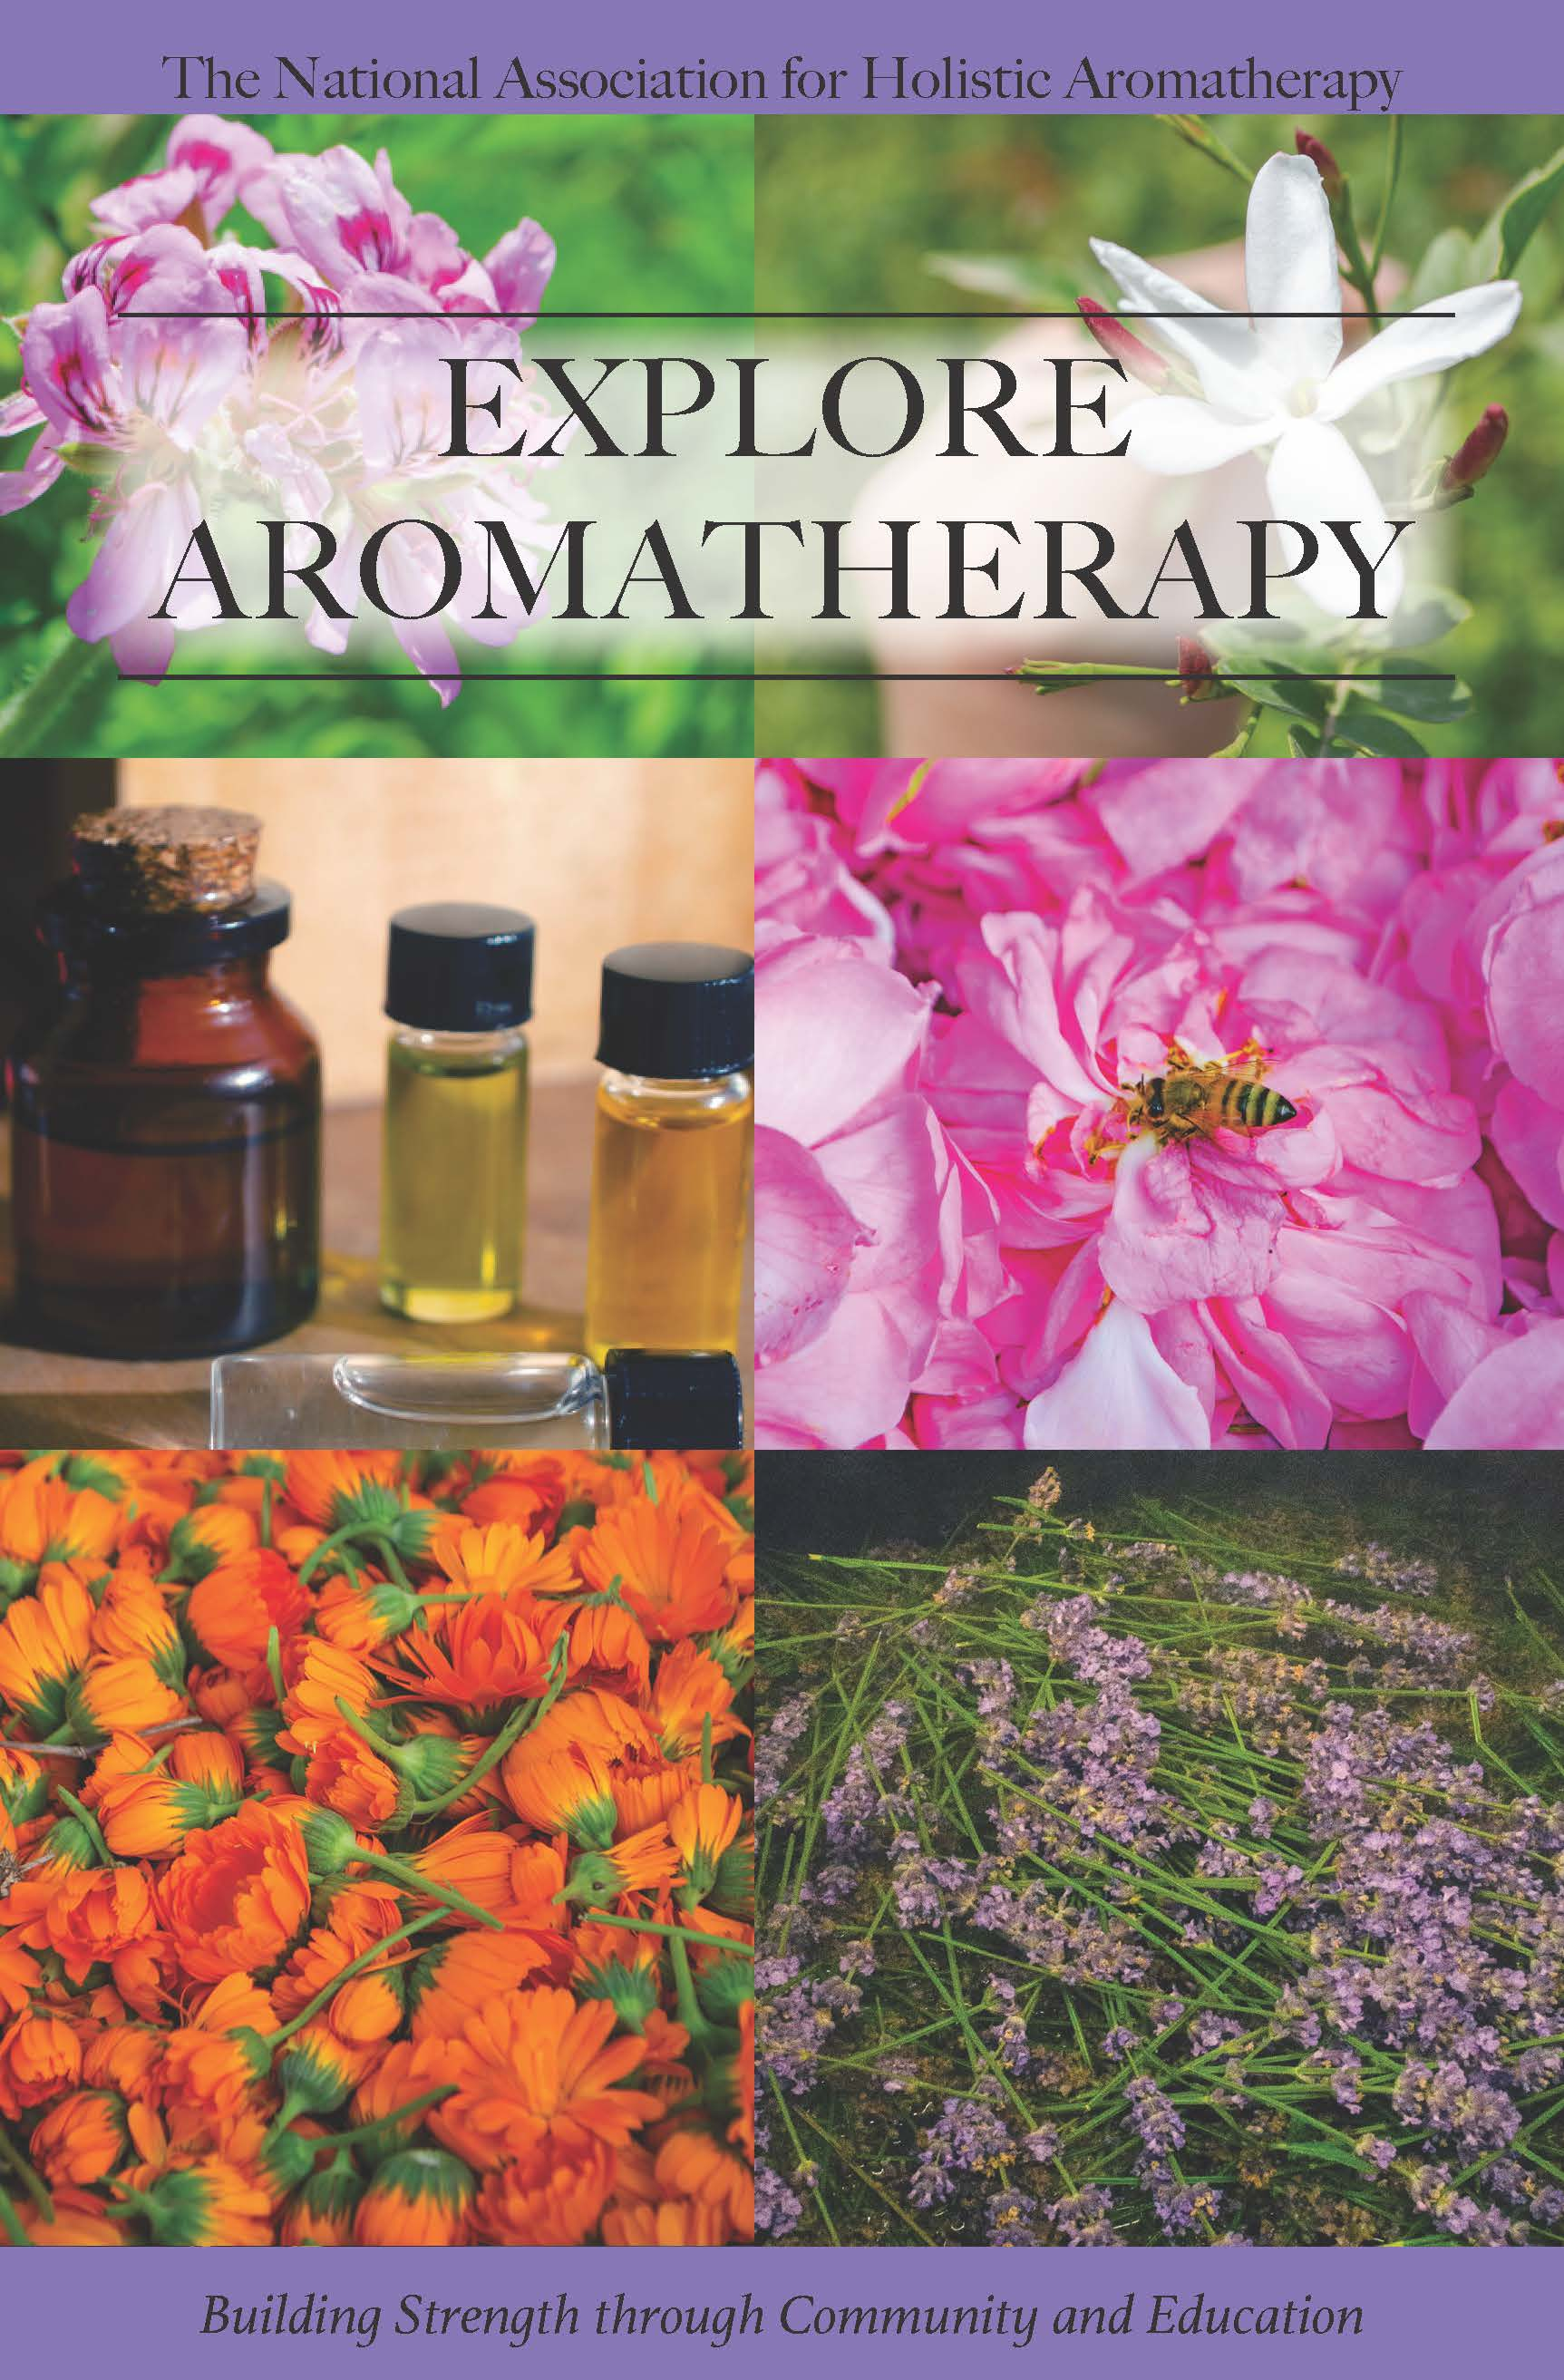 Explore Aromatherapy Booklet- PDF DOWNLOAD ONLY